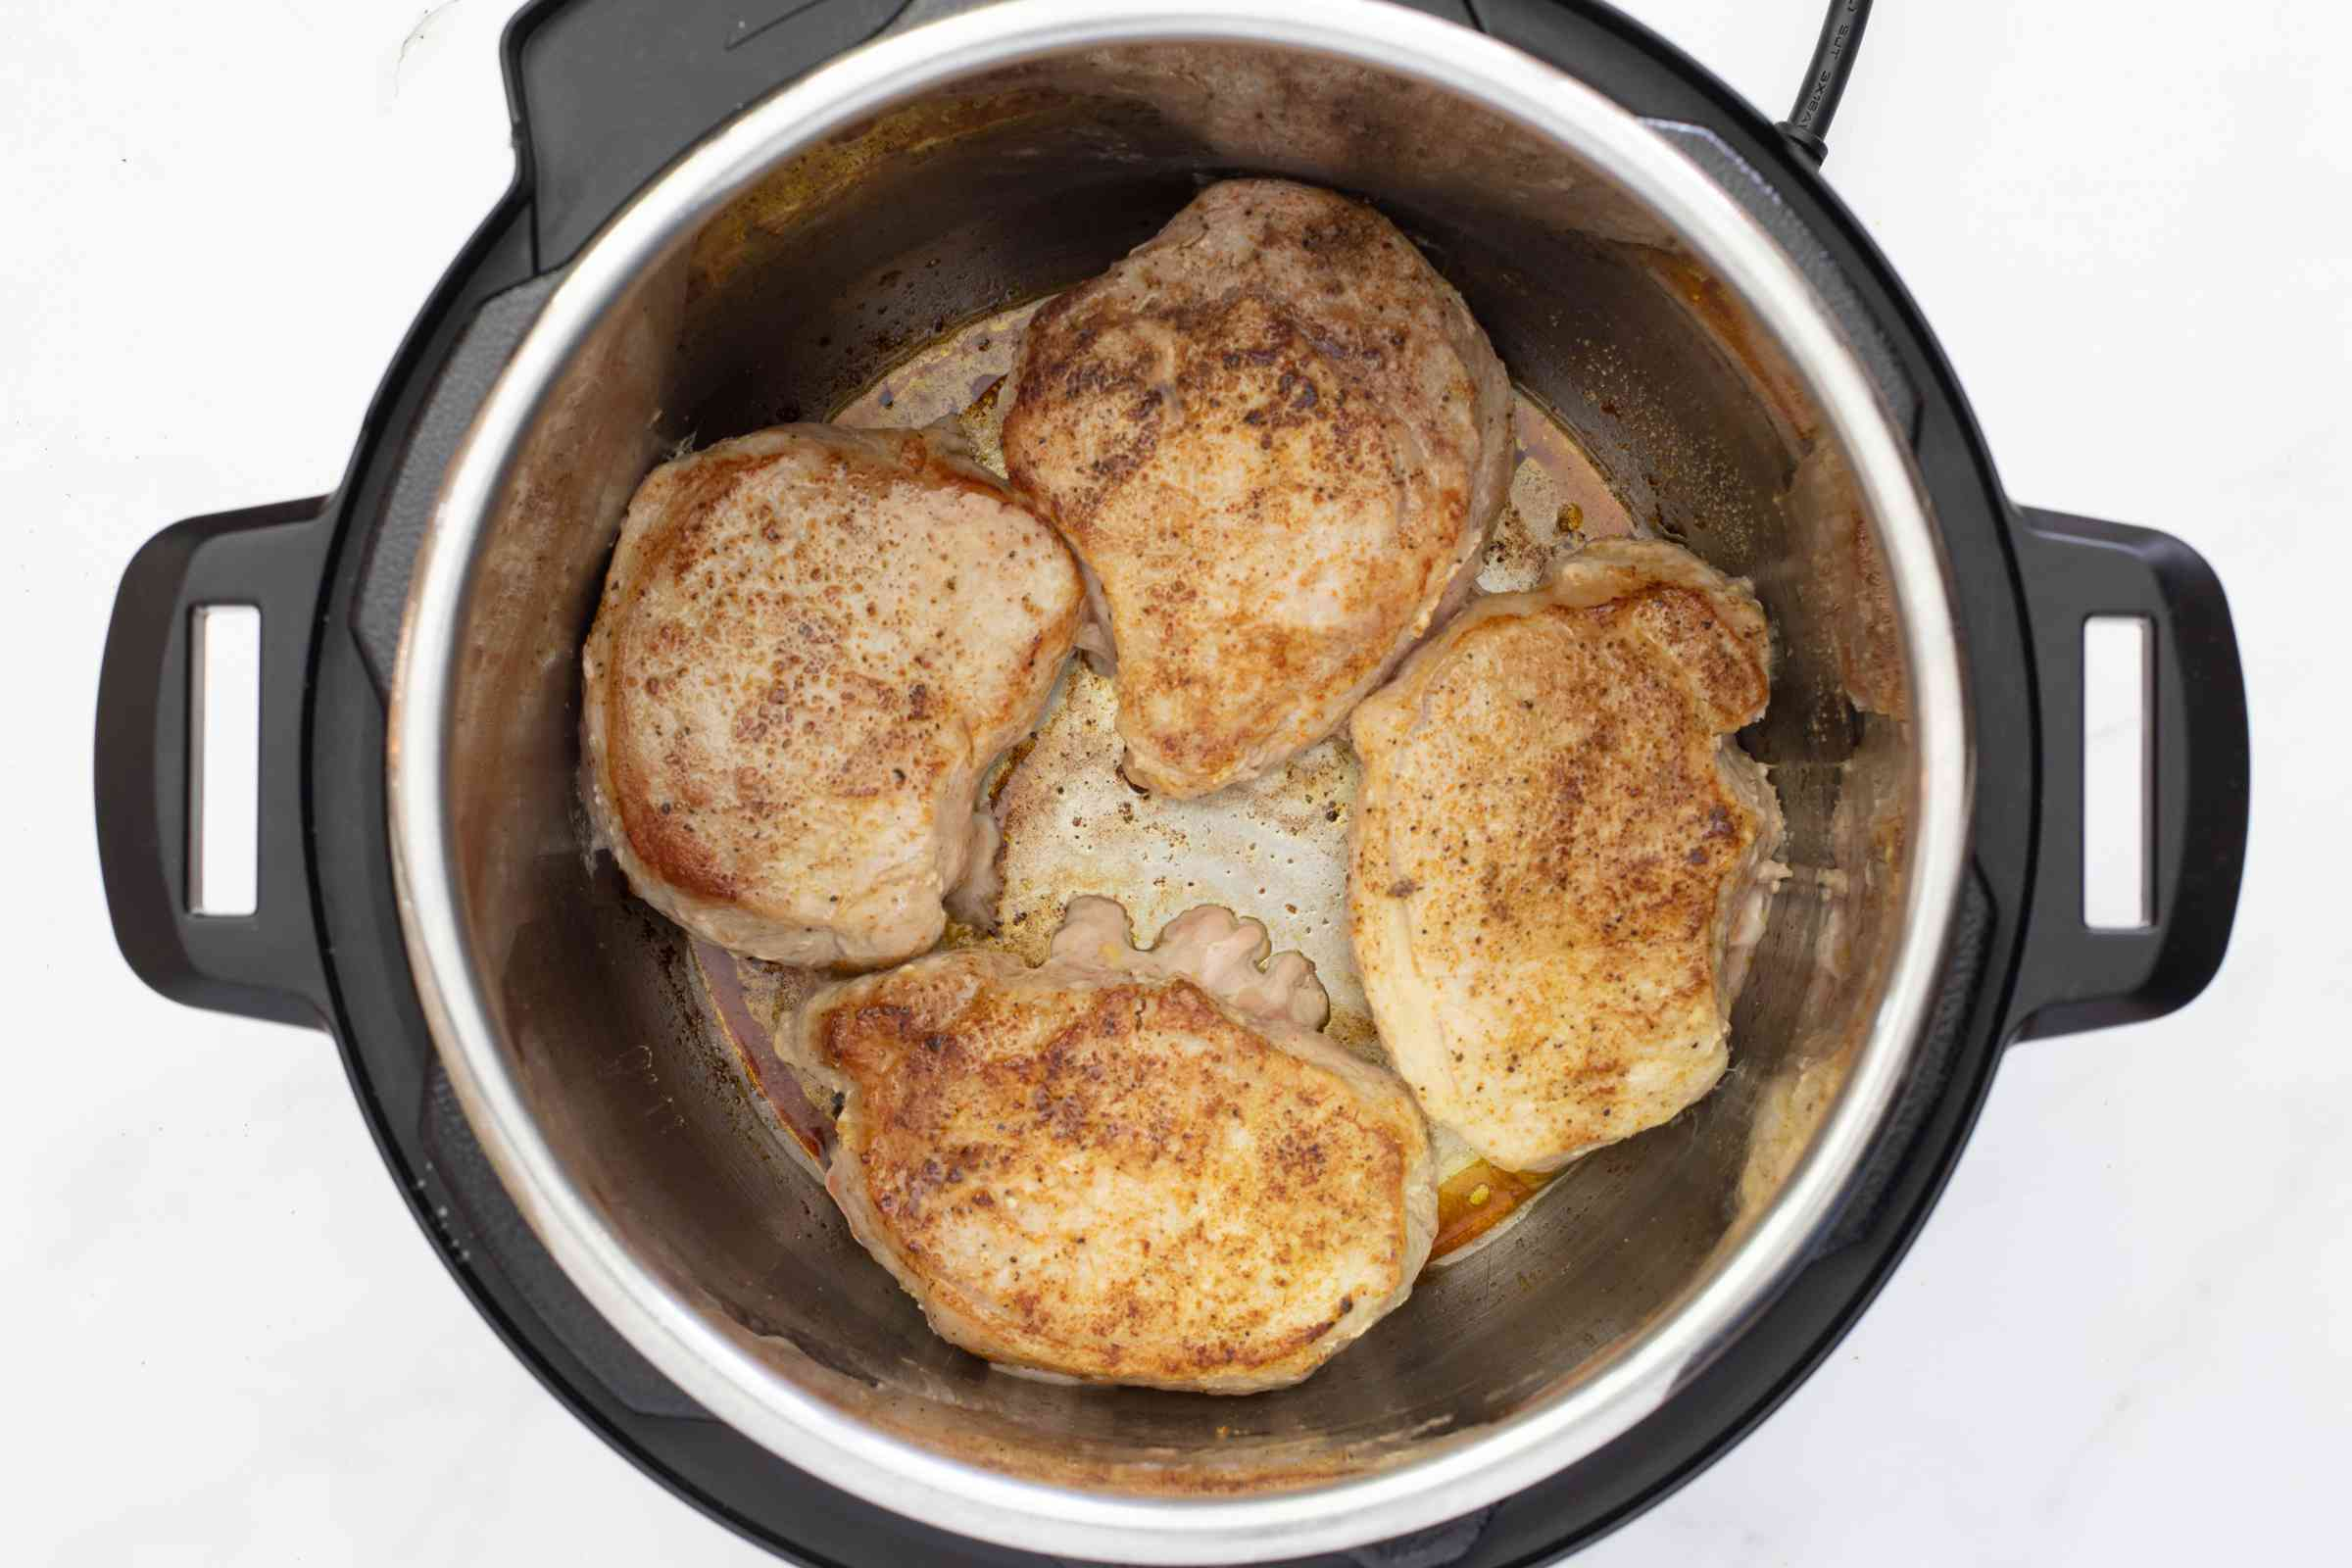 Searing pork chops in the Instant Pot